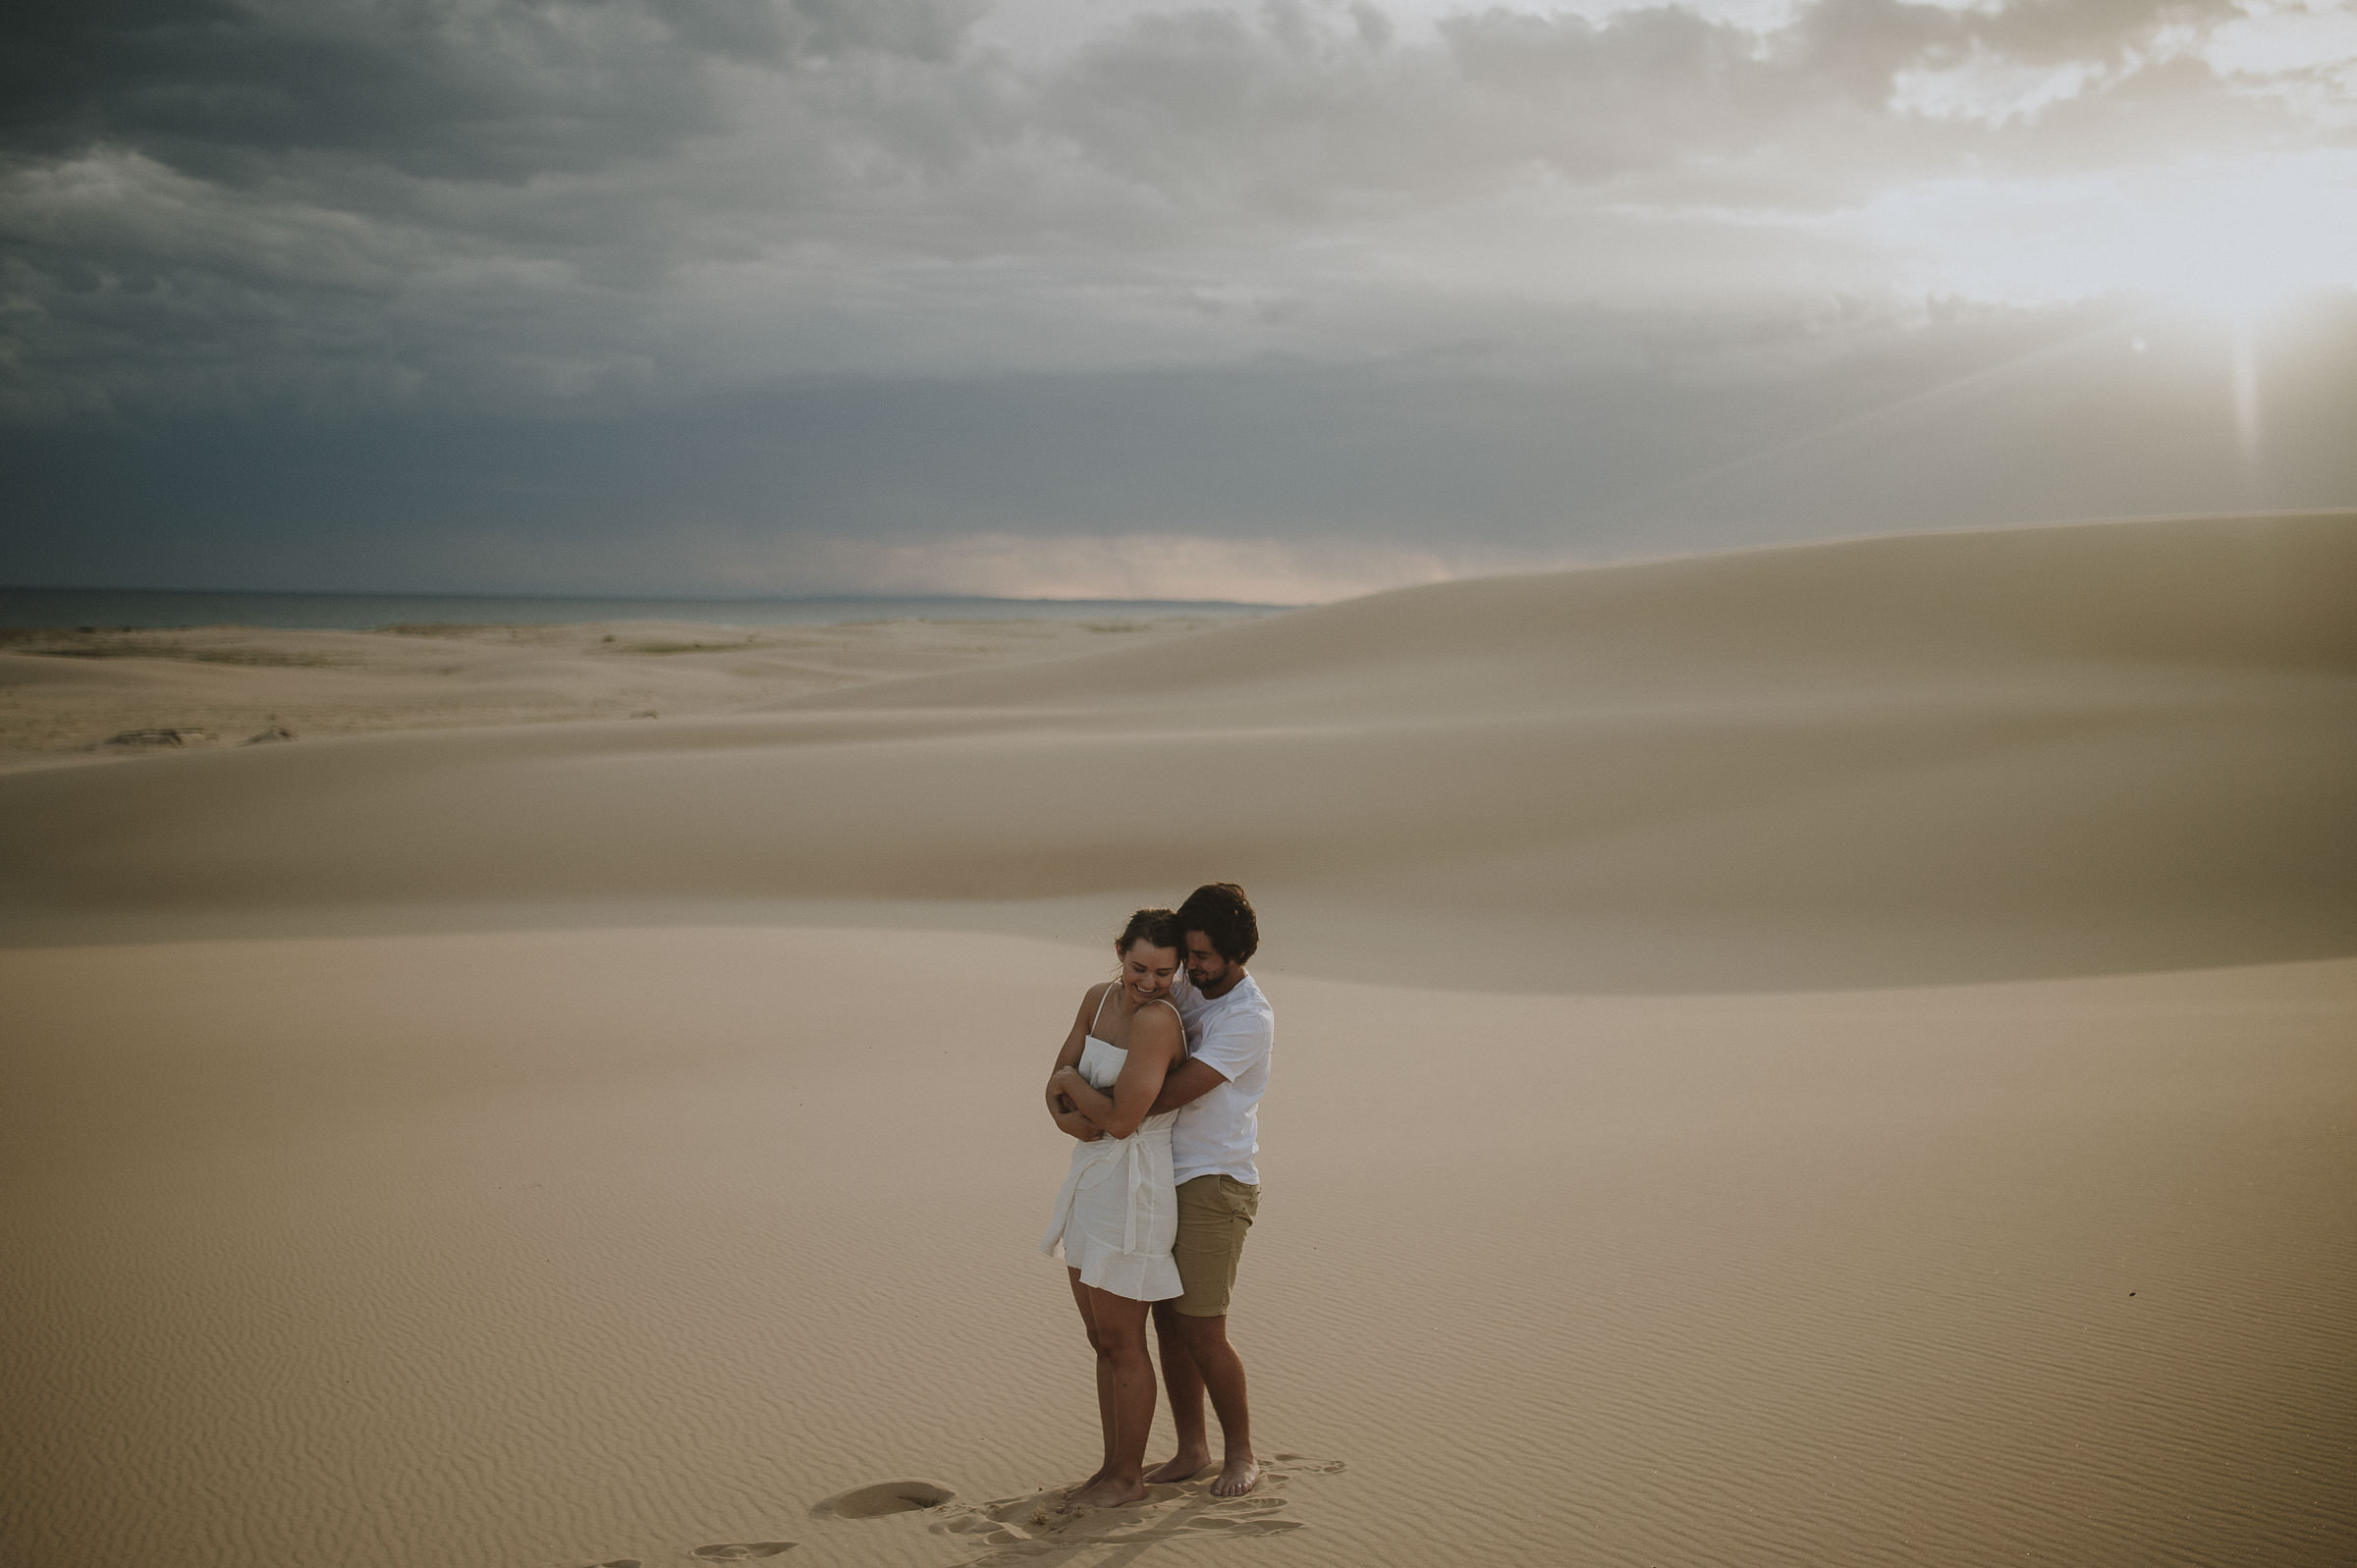 Courtney_Jim_Stockton_Dunes_Eshoot_Blog-7.jpg